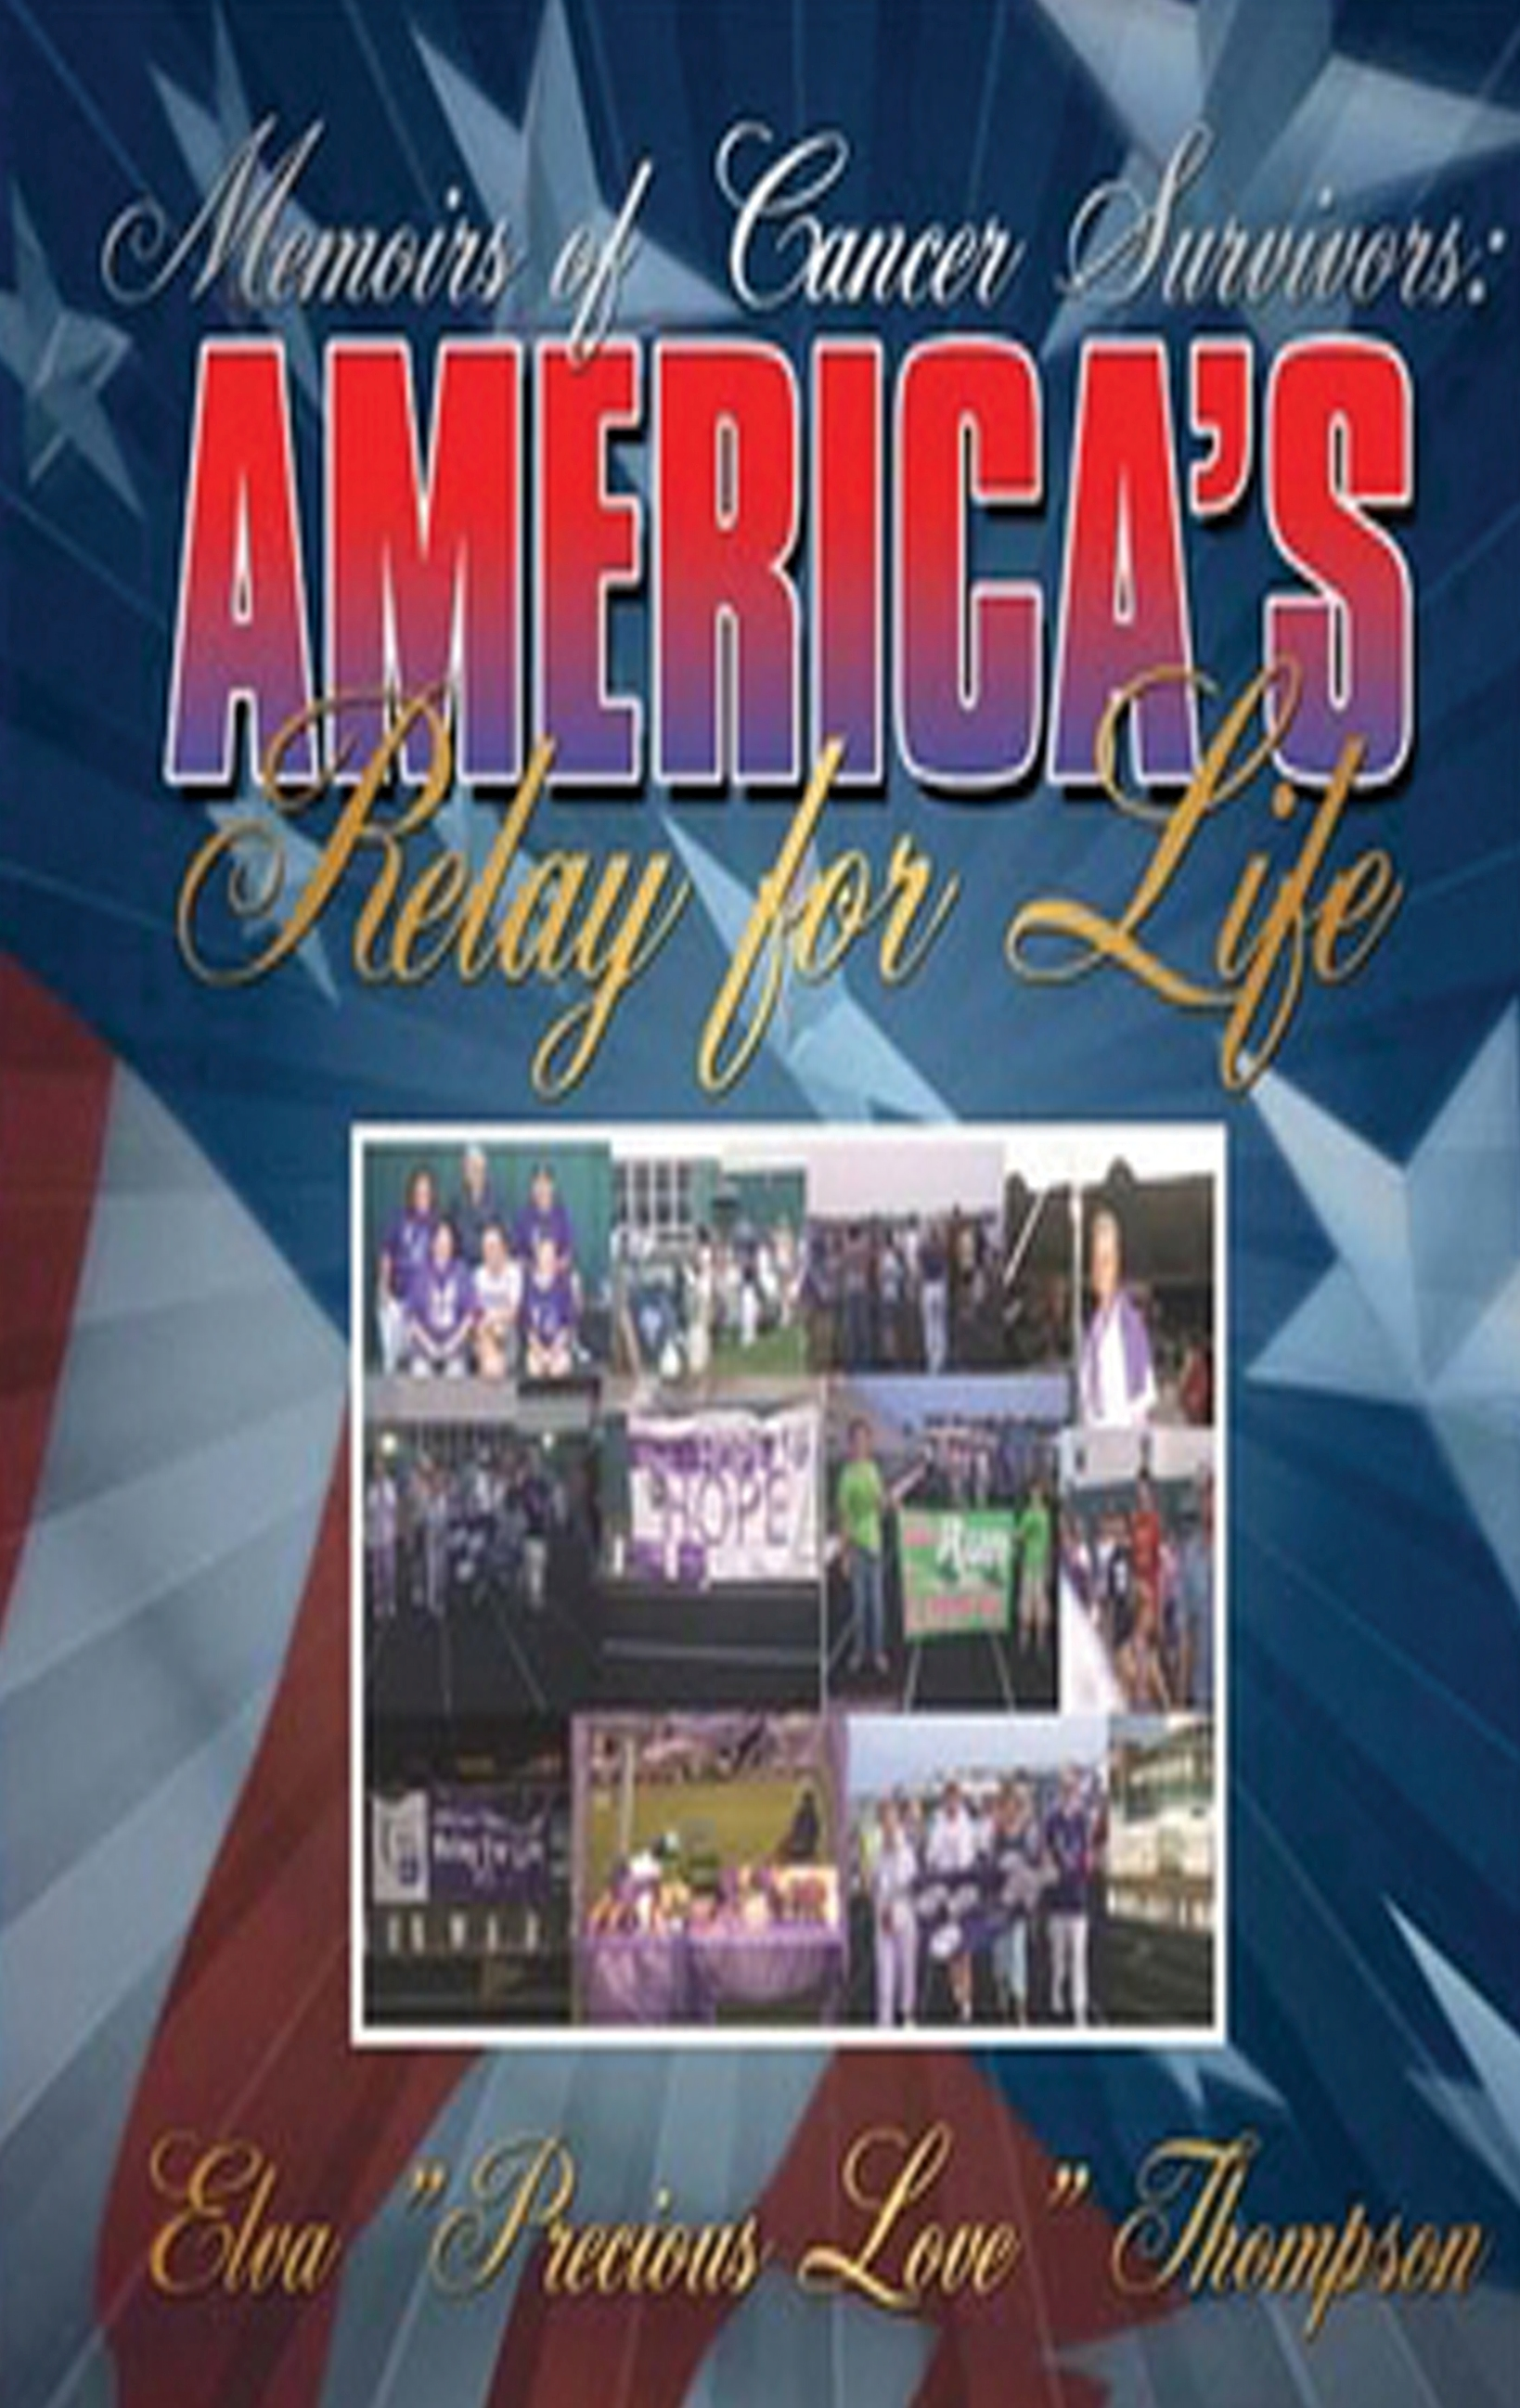 Memoirs of Cancer Survivors: AMERICA's Relay for Life